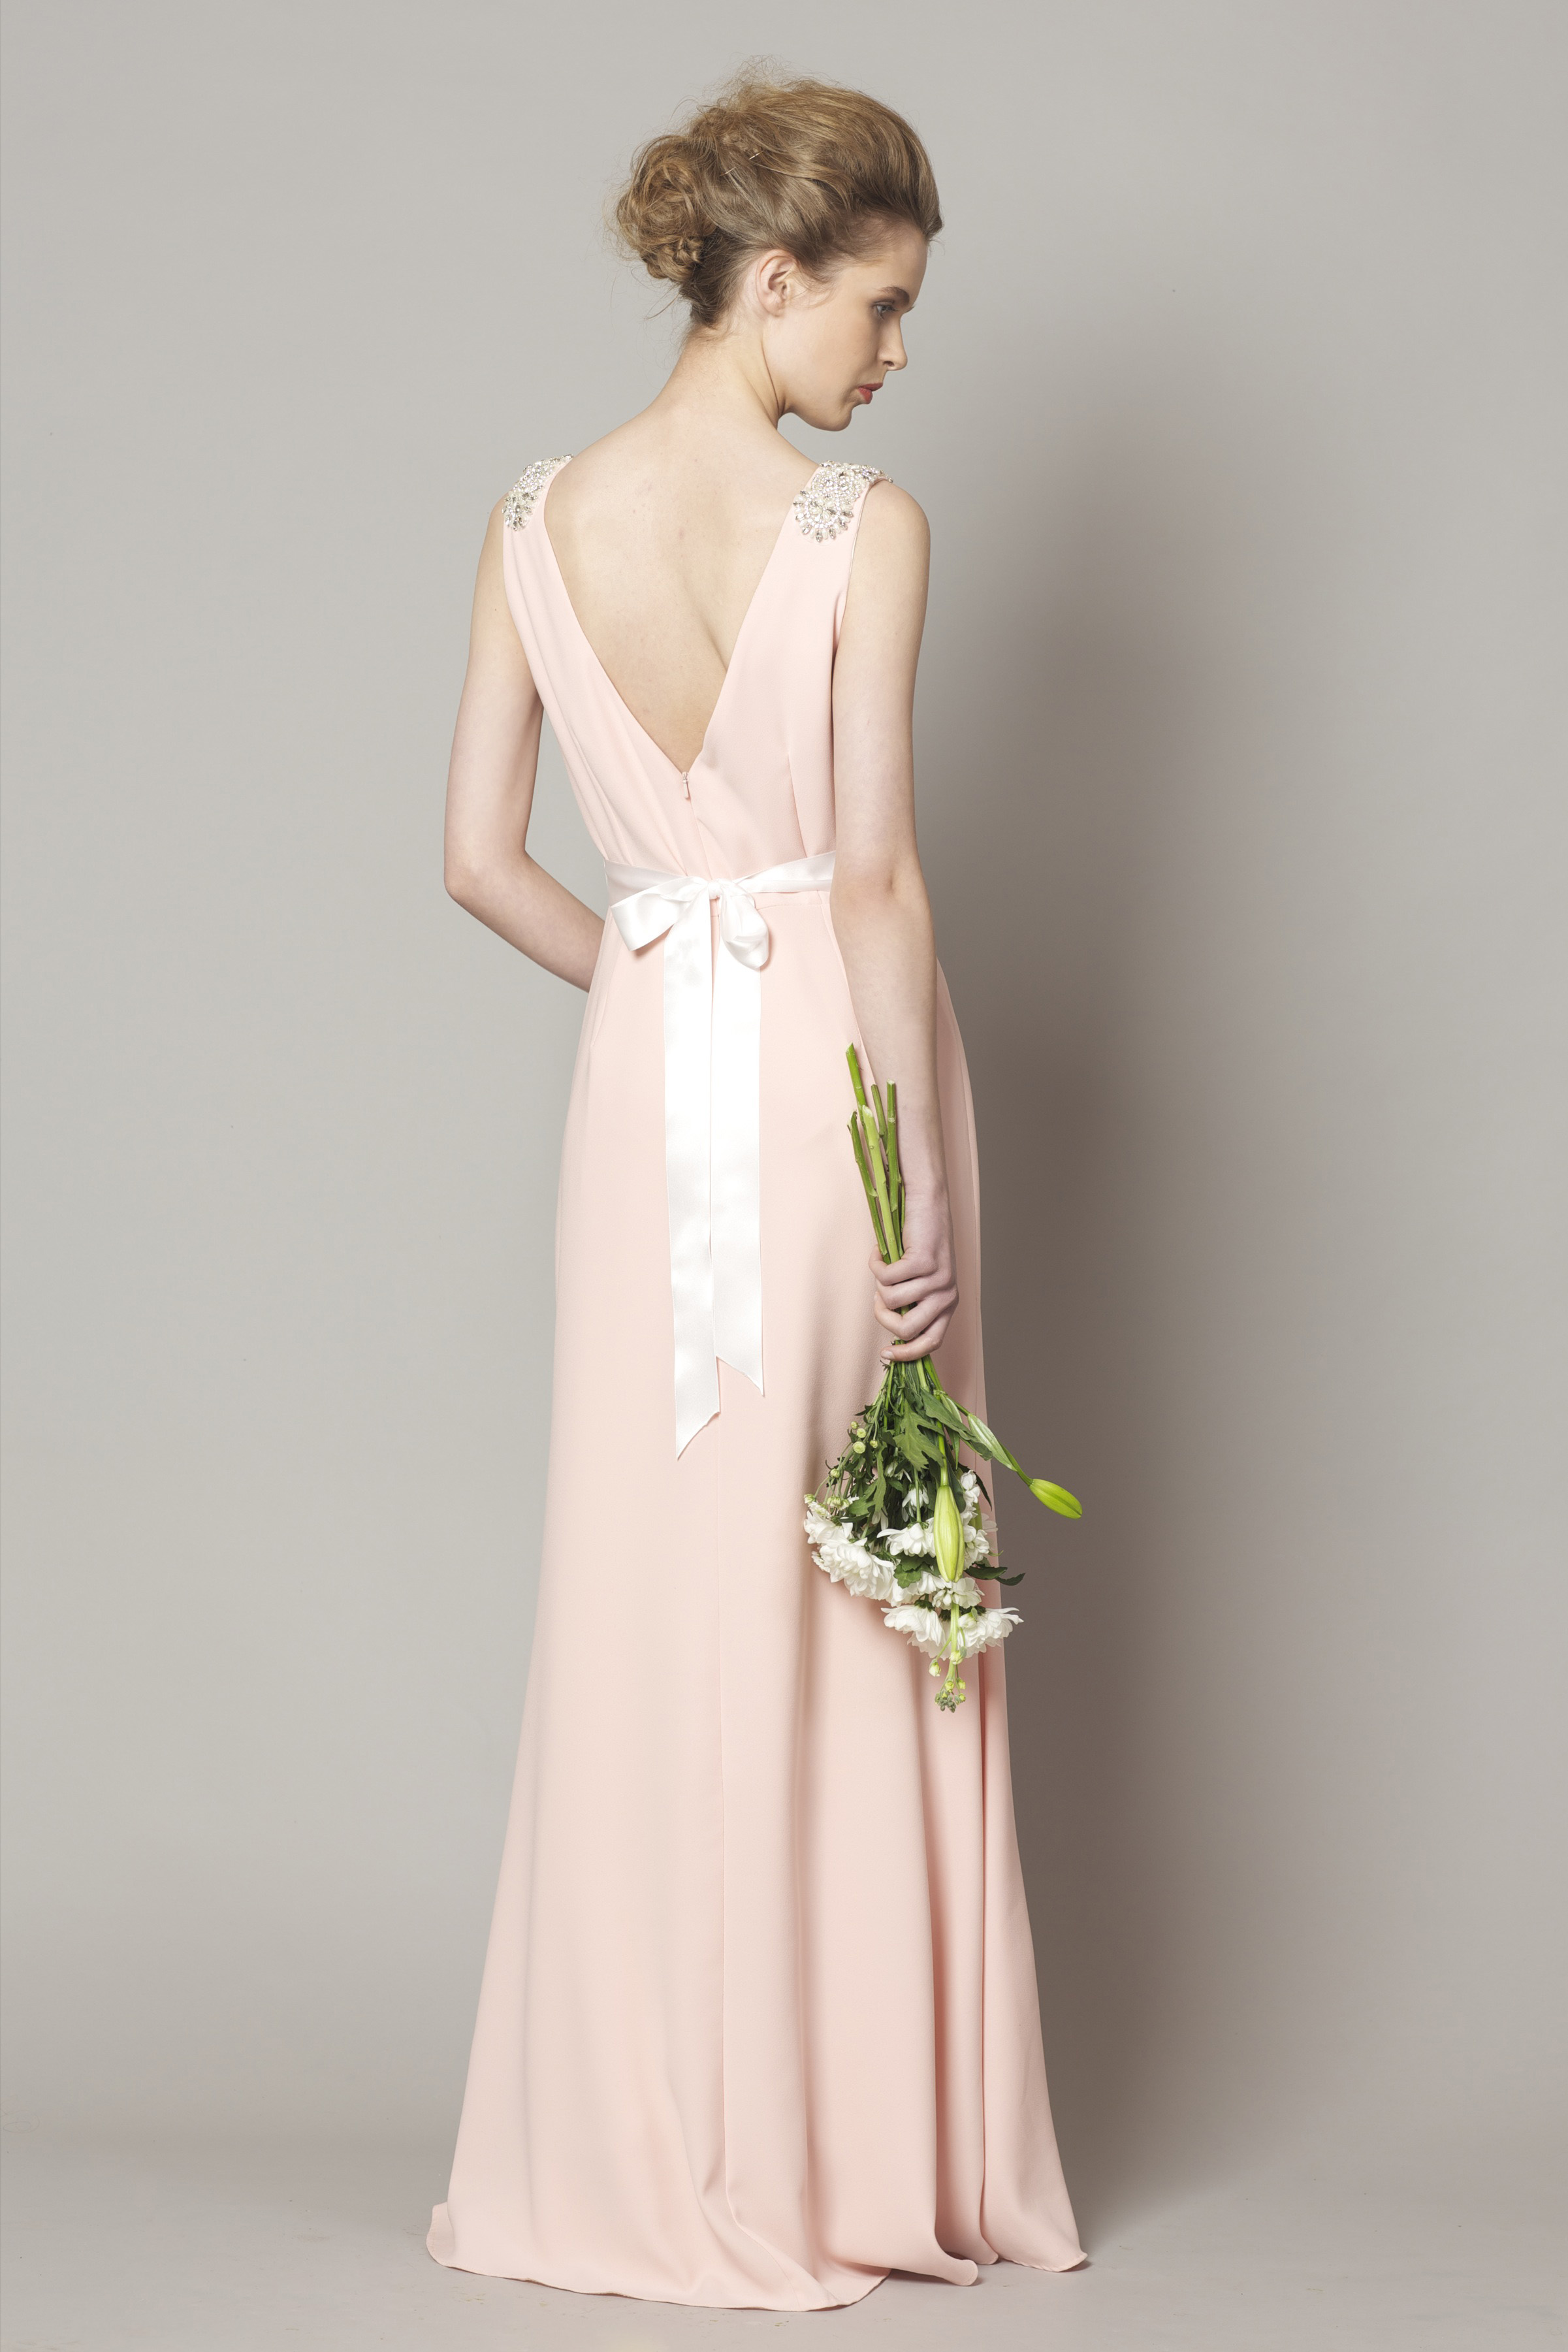 d10e15b7bbaf9 Salmon pink style DC1178 - Bridesmaid Evening   Debs Dresses from ...